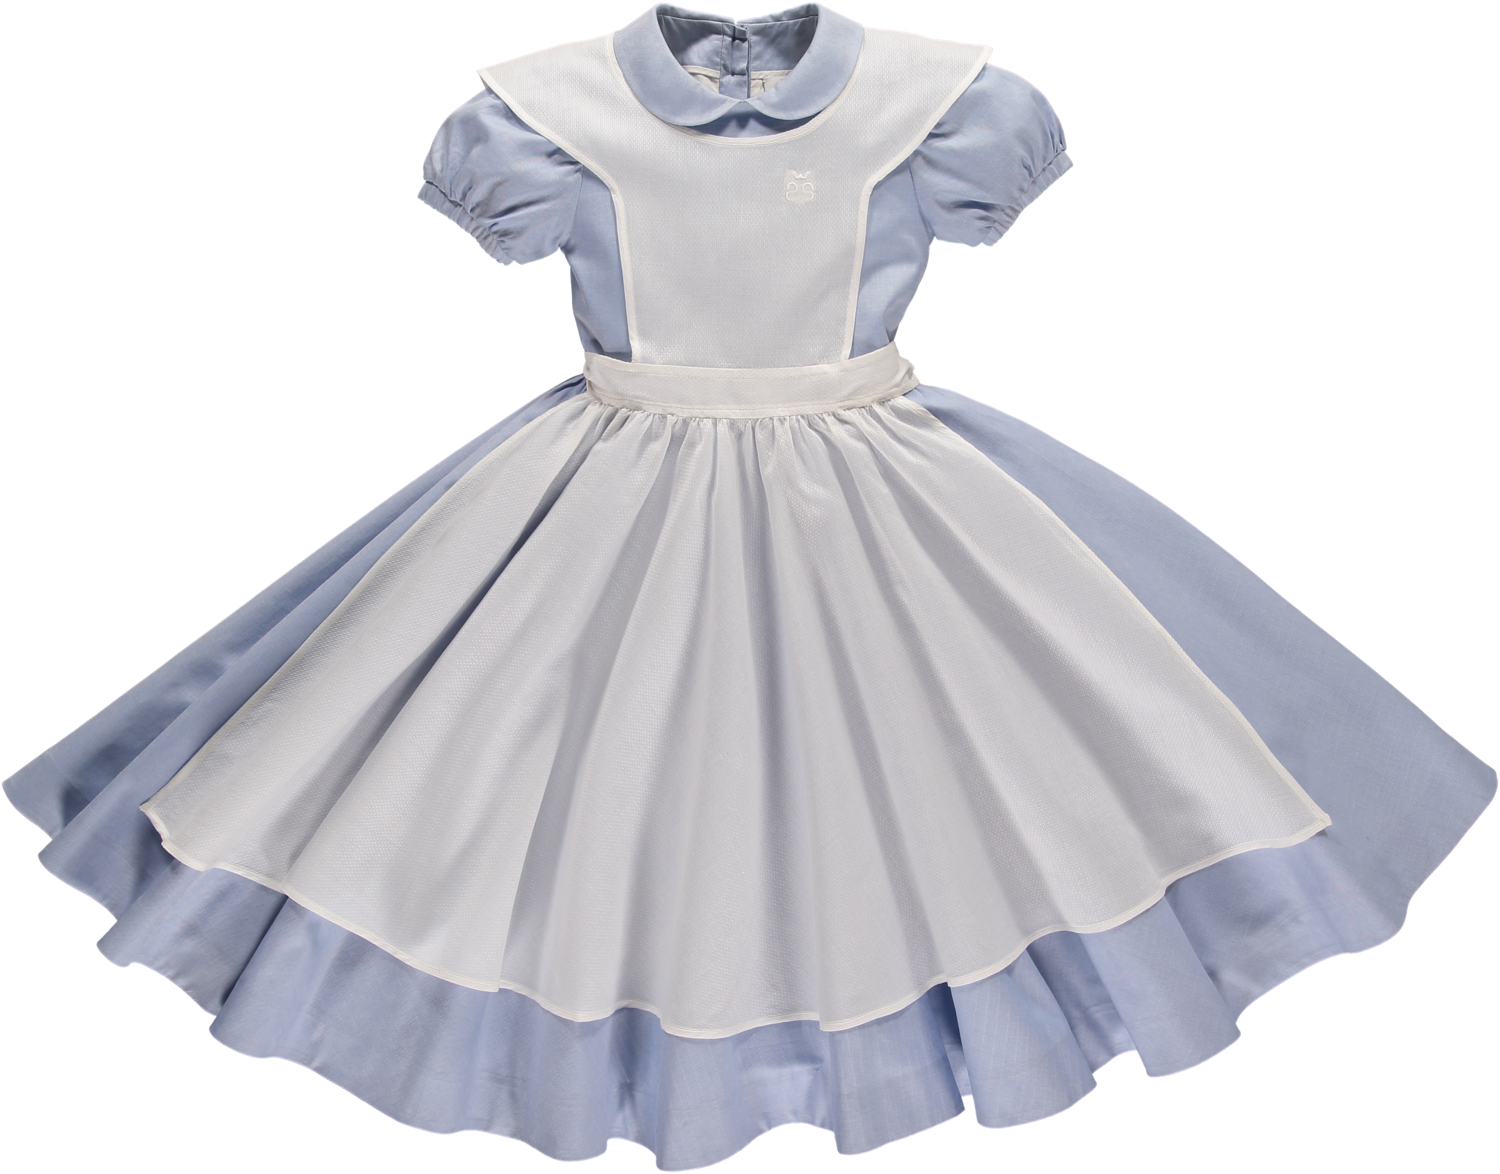 Dress png. Alice tails and tales clip transparent download